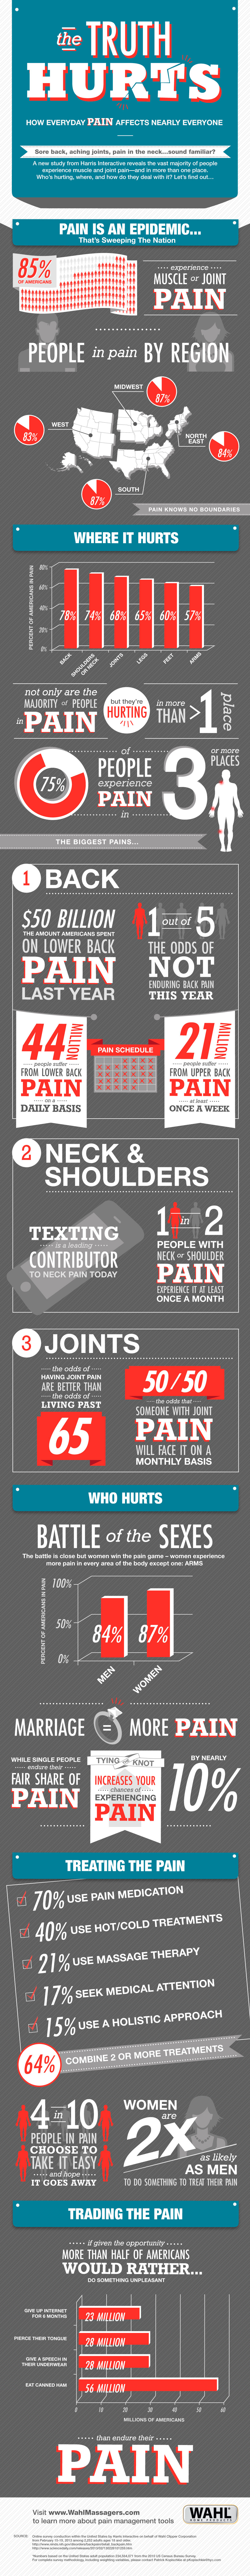 wahl-pain-infographic_51893c3293c20